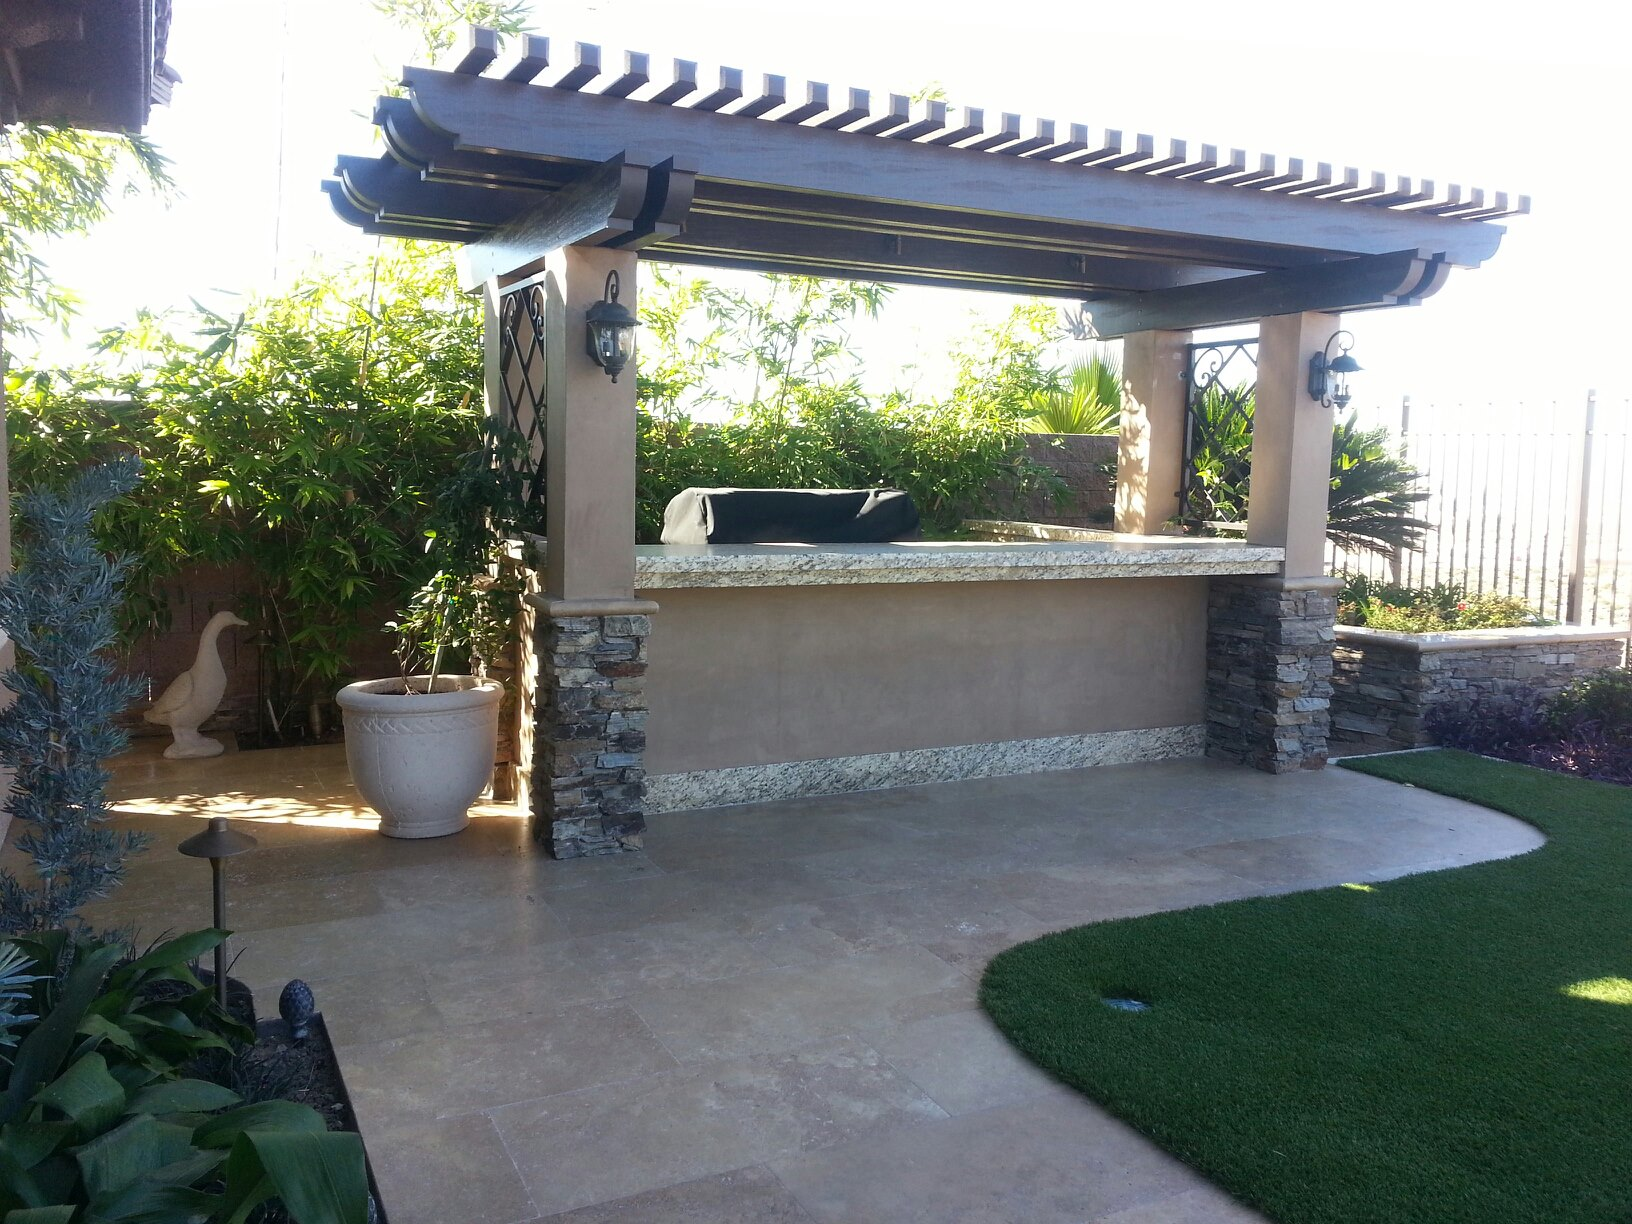 Patio Covers Jeff Lee Landscaping Las Vegas Landscaping with a